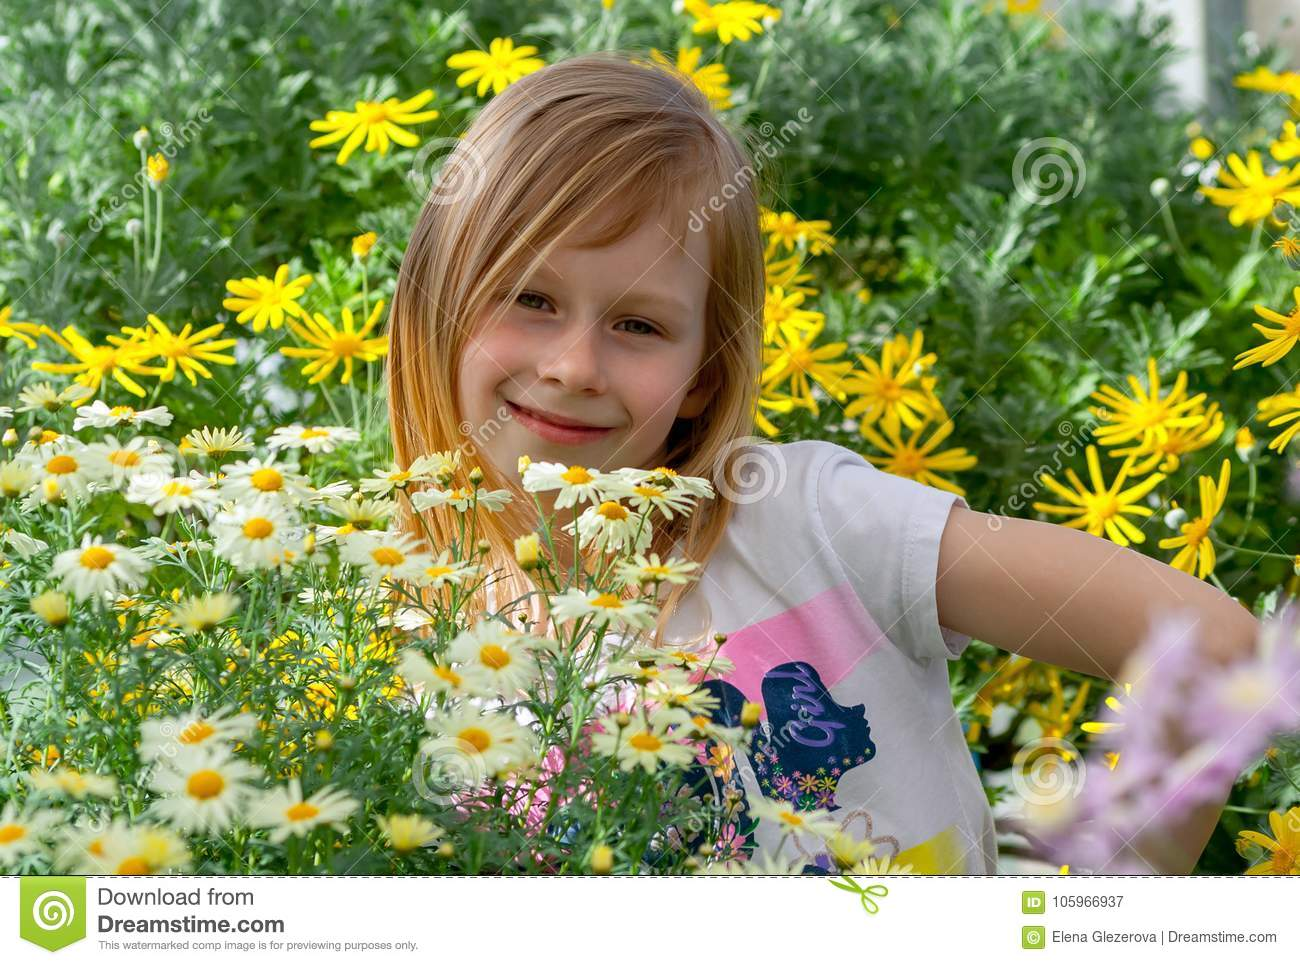 Little girl seven years old, surrounded by daisy flowers